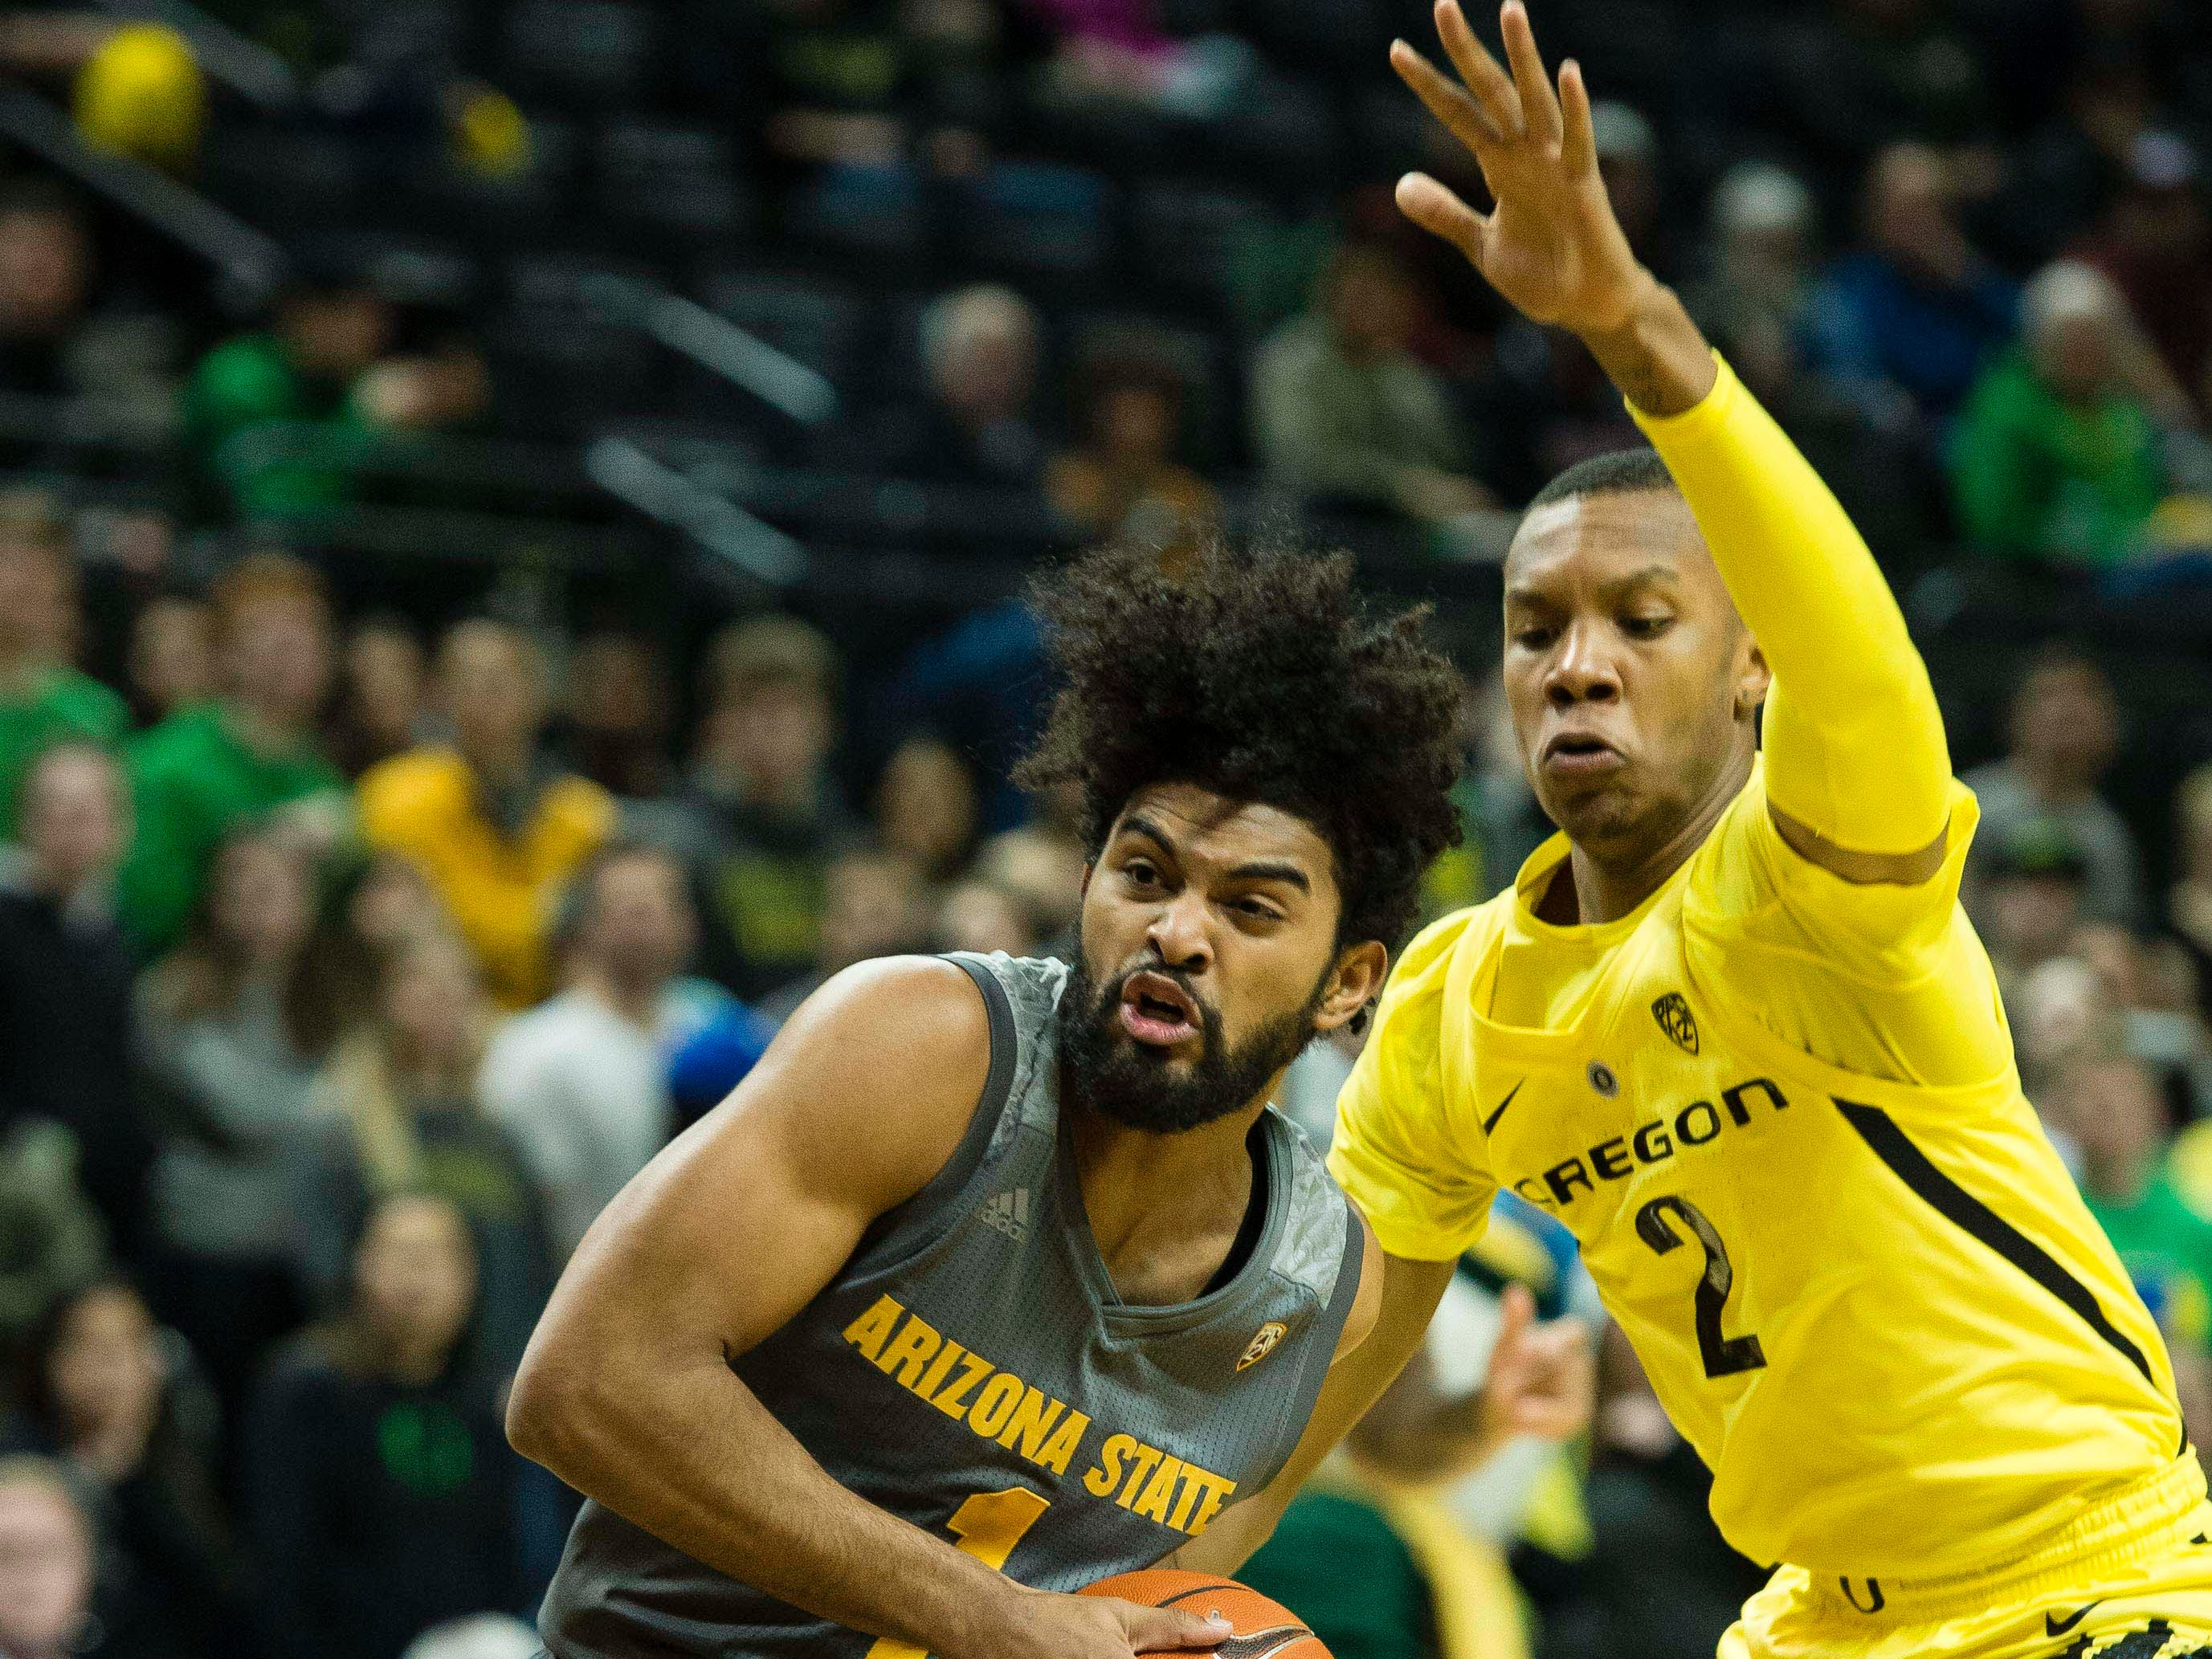 Feb 28, 2019; Eugene, OR, USA; Arizona State Sun Devils guard Remy Martin (1) controls the ball past Oregon Ducks forward Louis King (2) during the first half at Matthew Knight Arena.